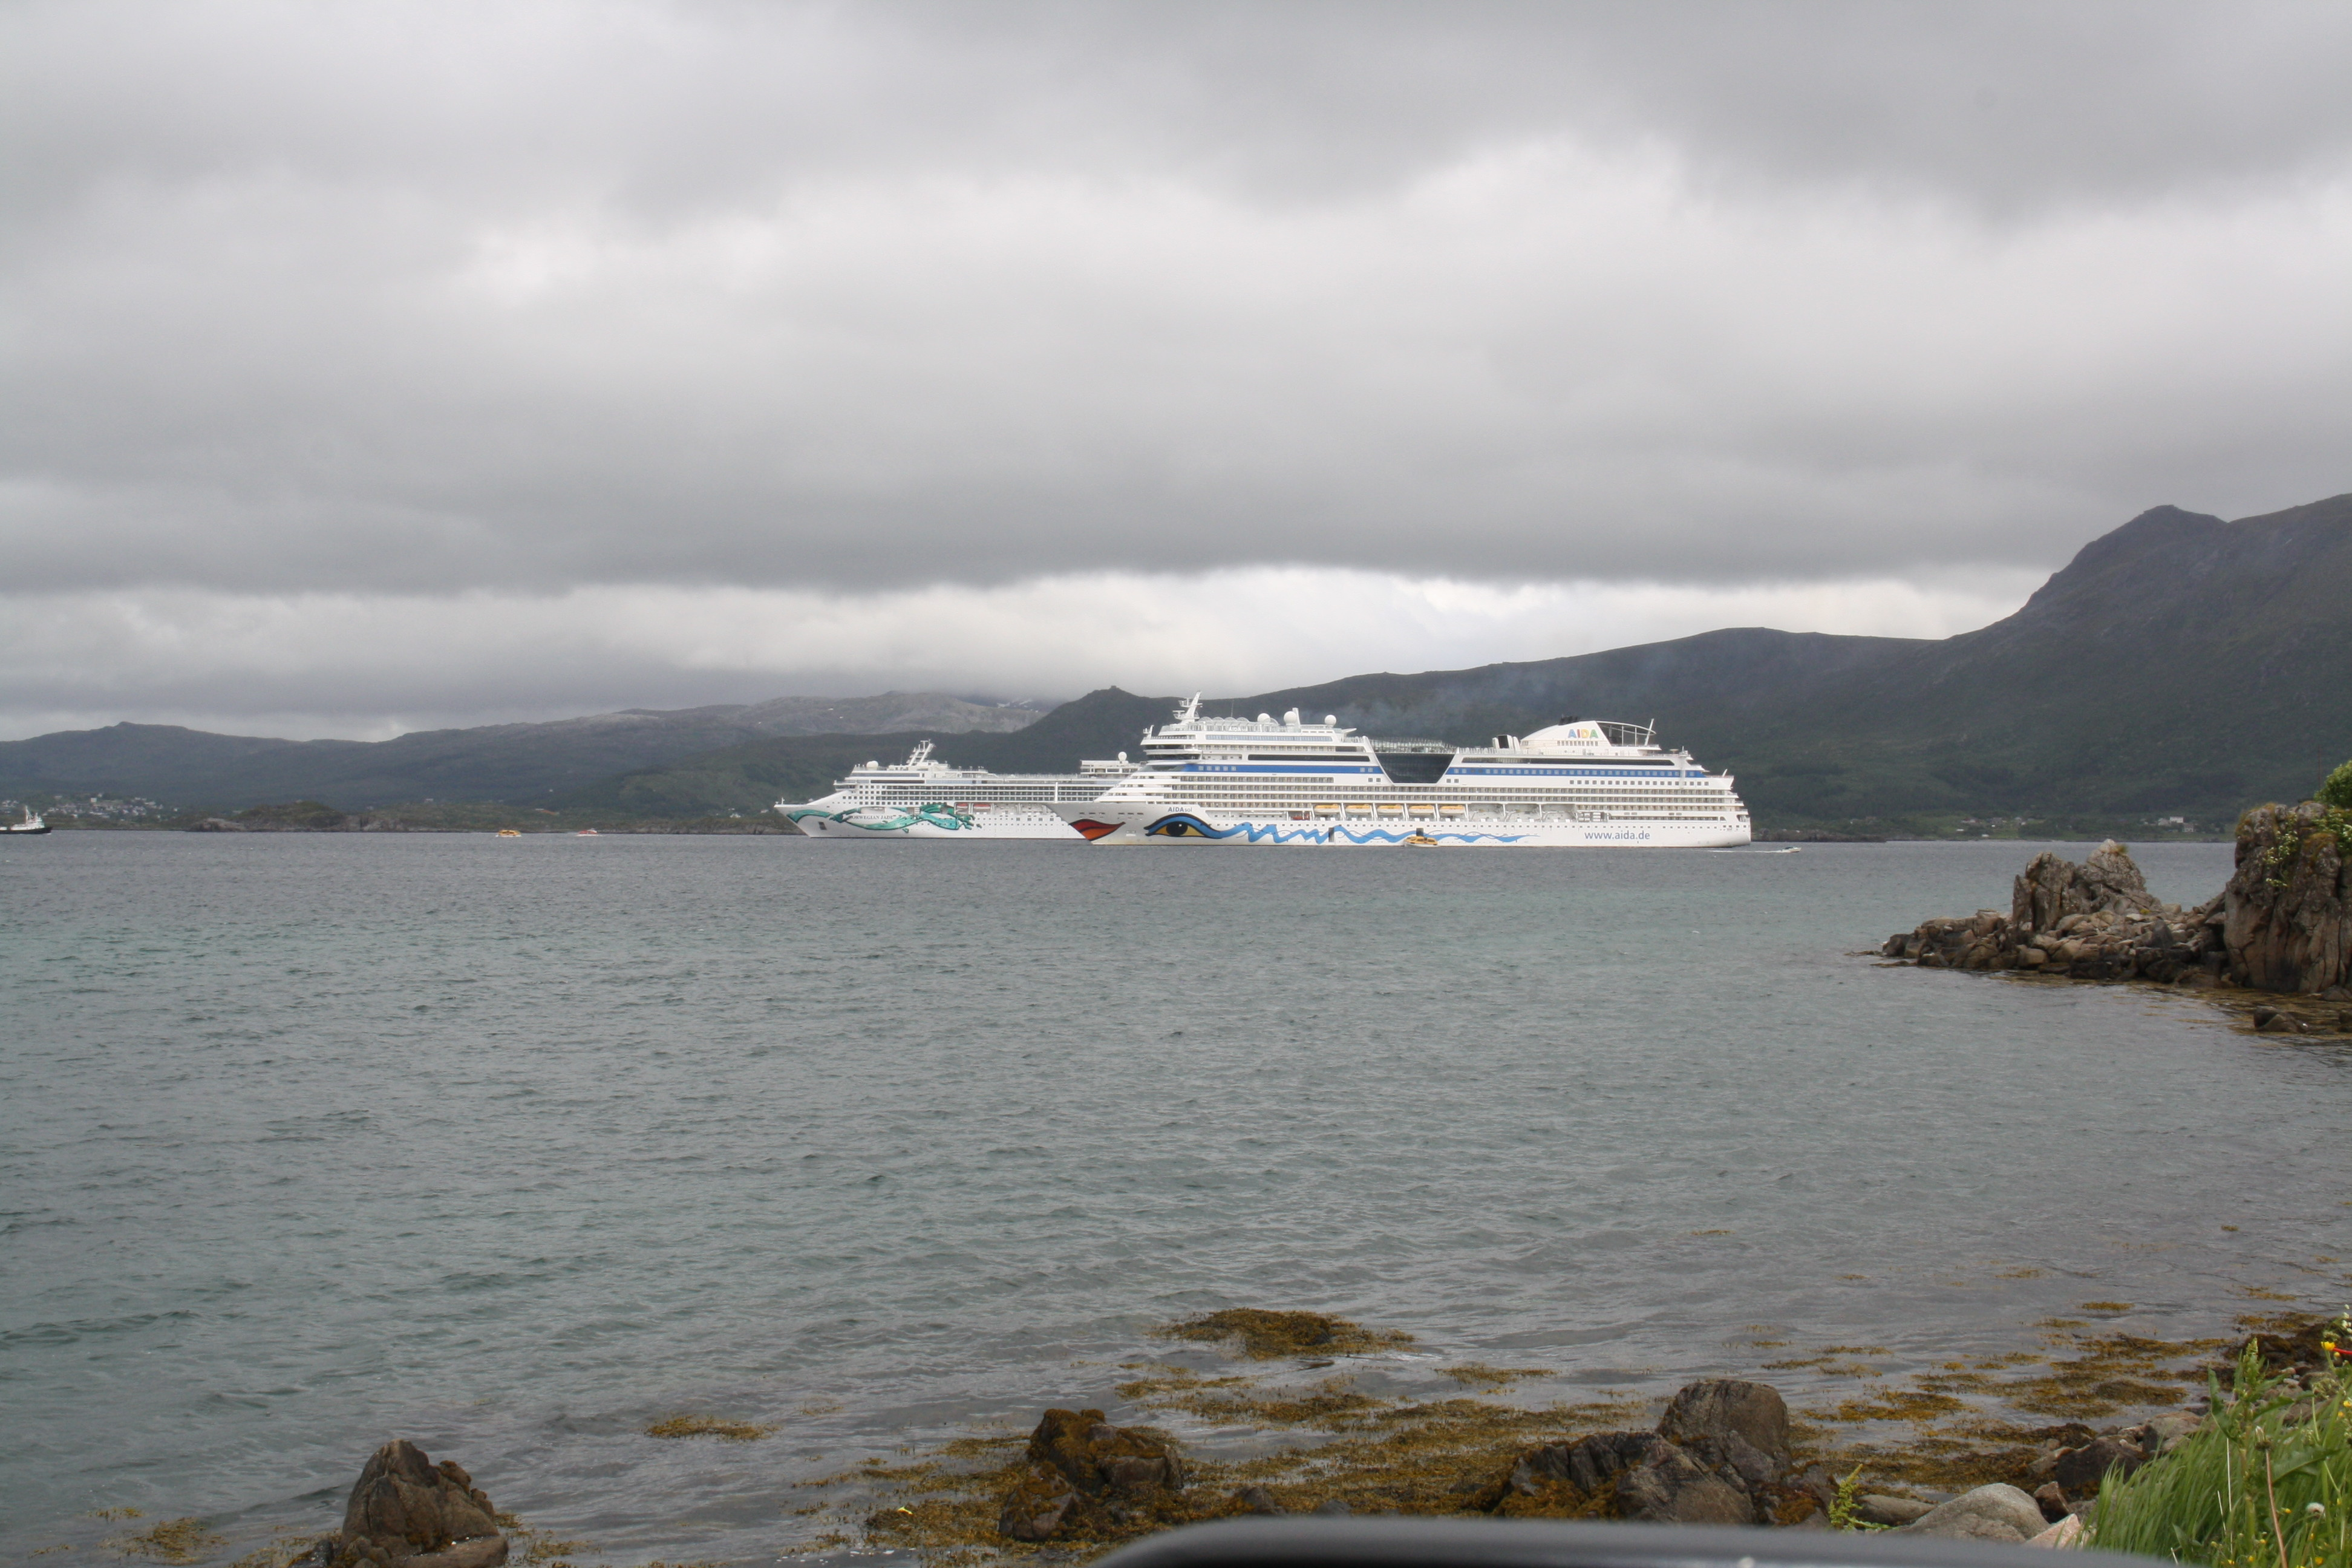 Aidasol & Norwegian Jade at Leknes harbour